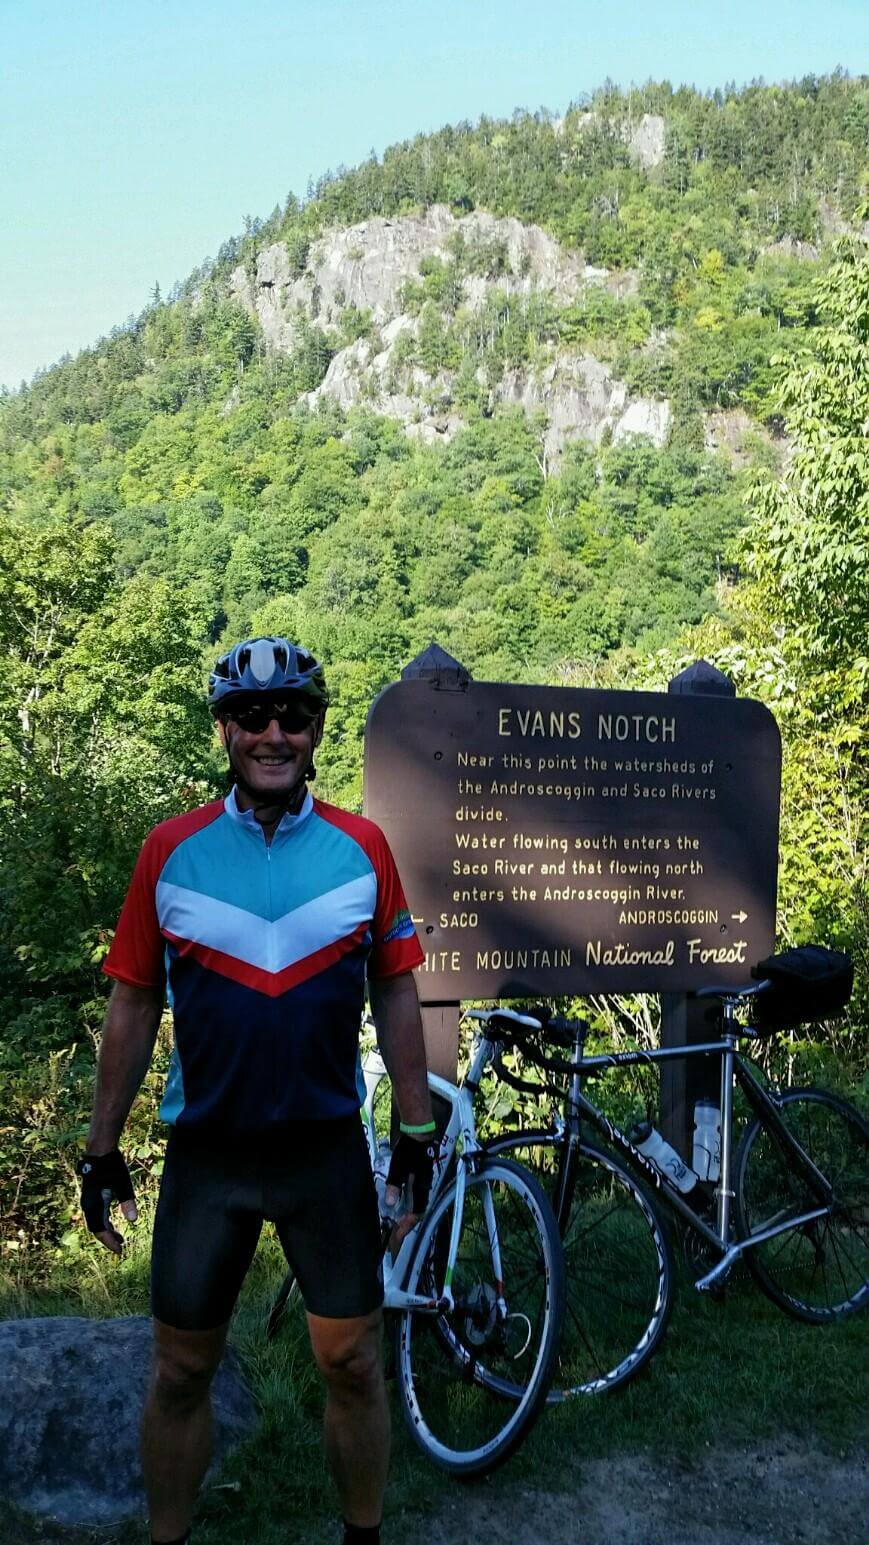 Barry and bike in Evans Notch